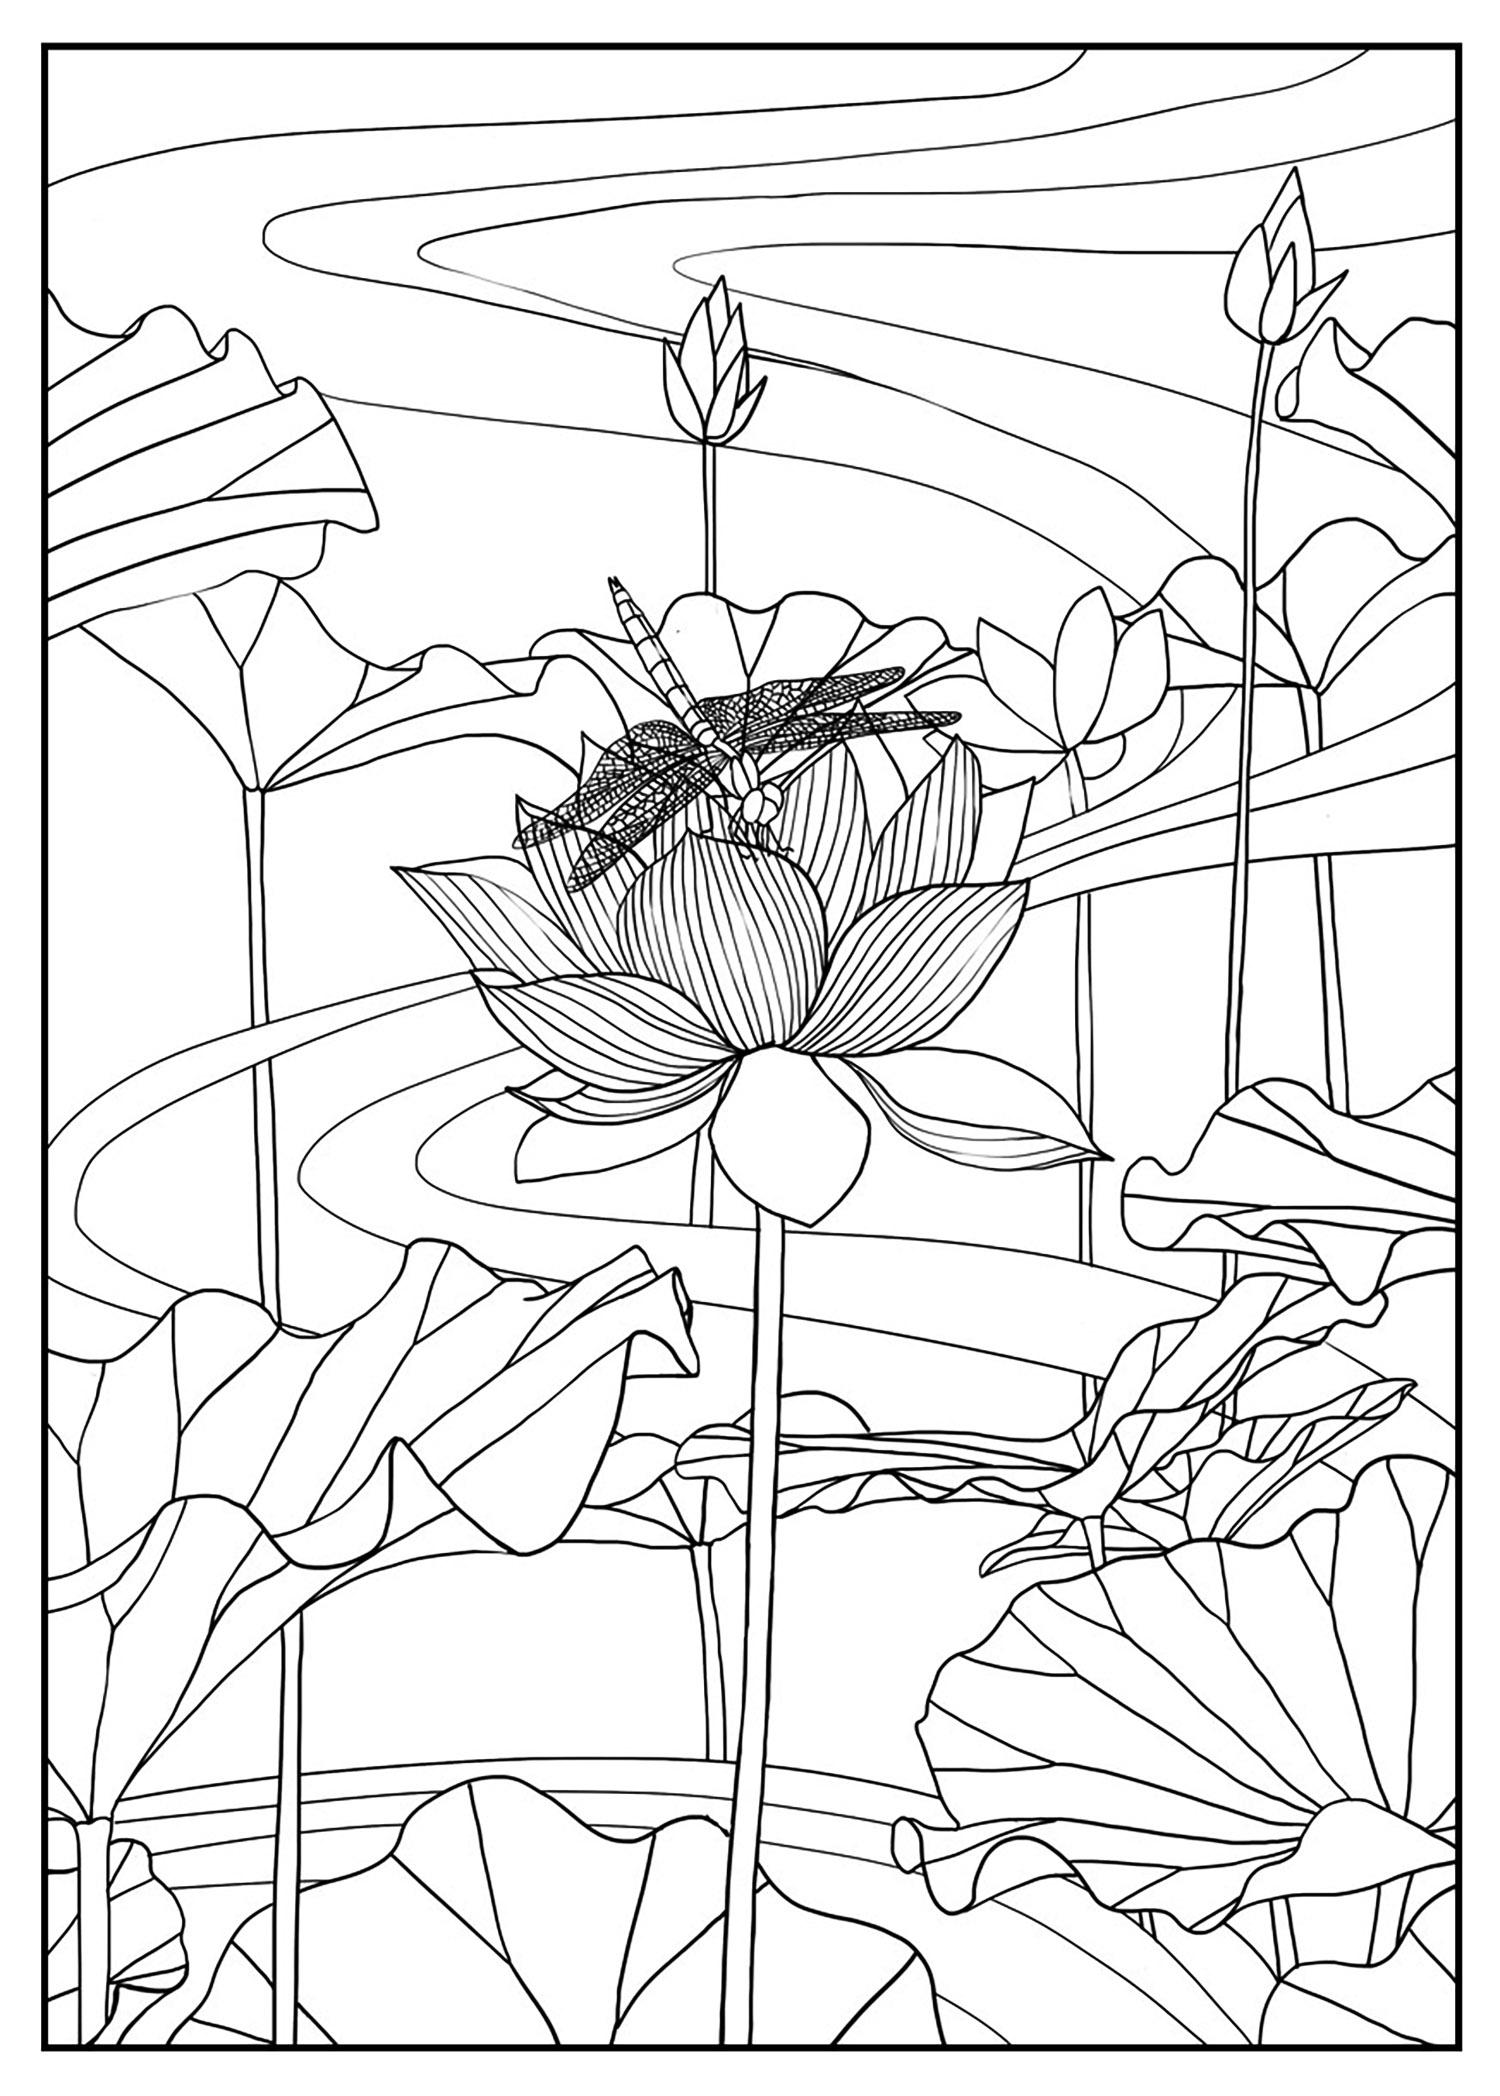 Lotus, Exclusive coloring page